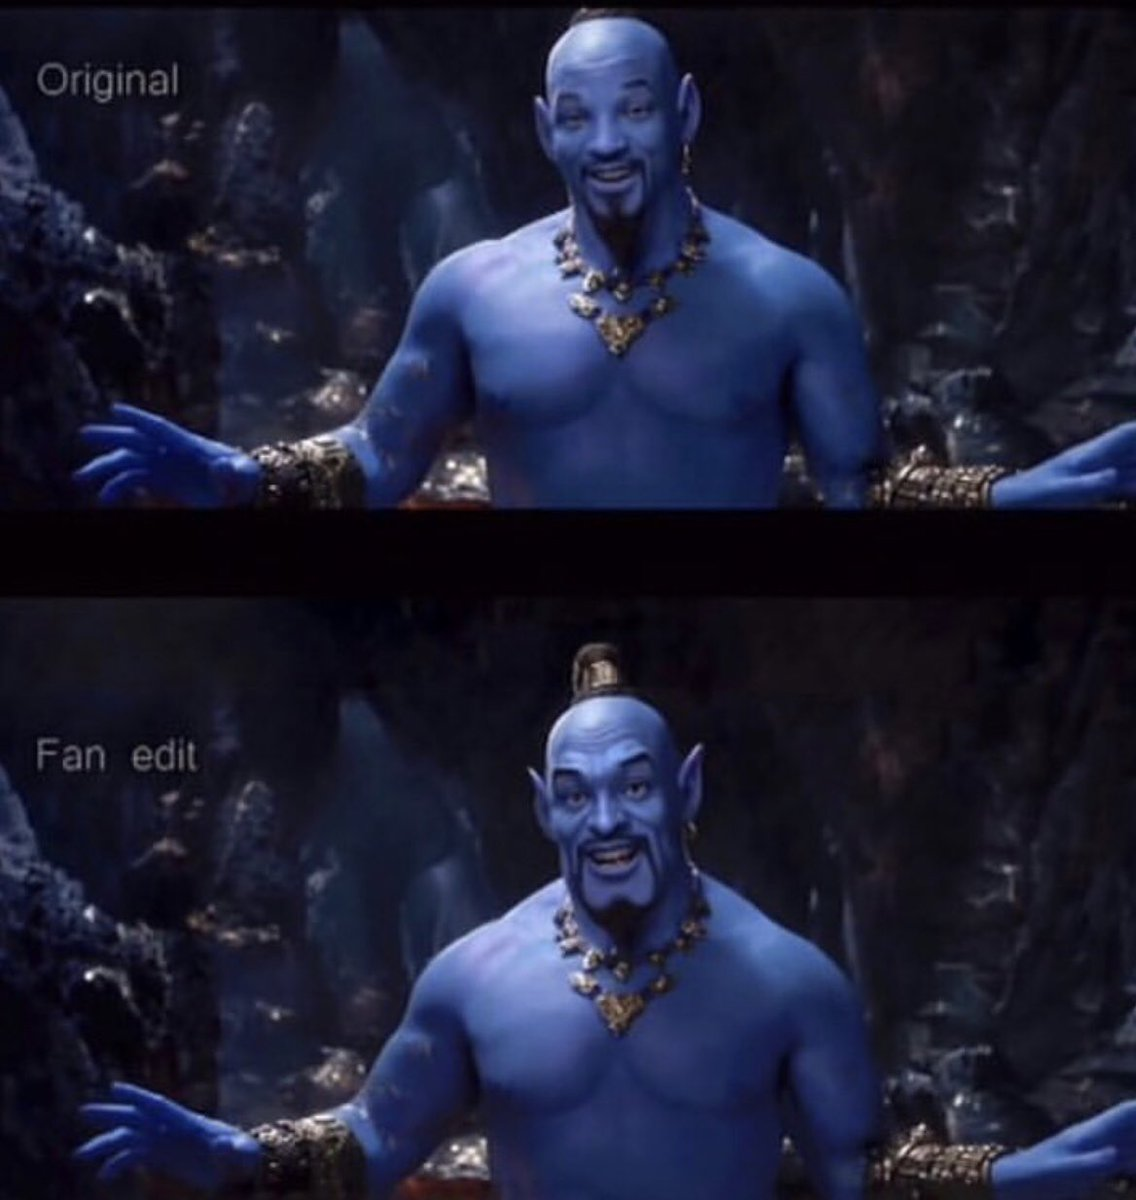 Now THIS is what the genie should look like! @disneyaladdin #Aladdin  #aladdinliveaction #aladdintrailer <br>http://pic.twitter.com/v0GgMCS1KP